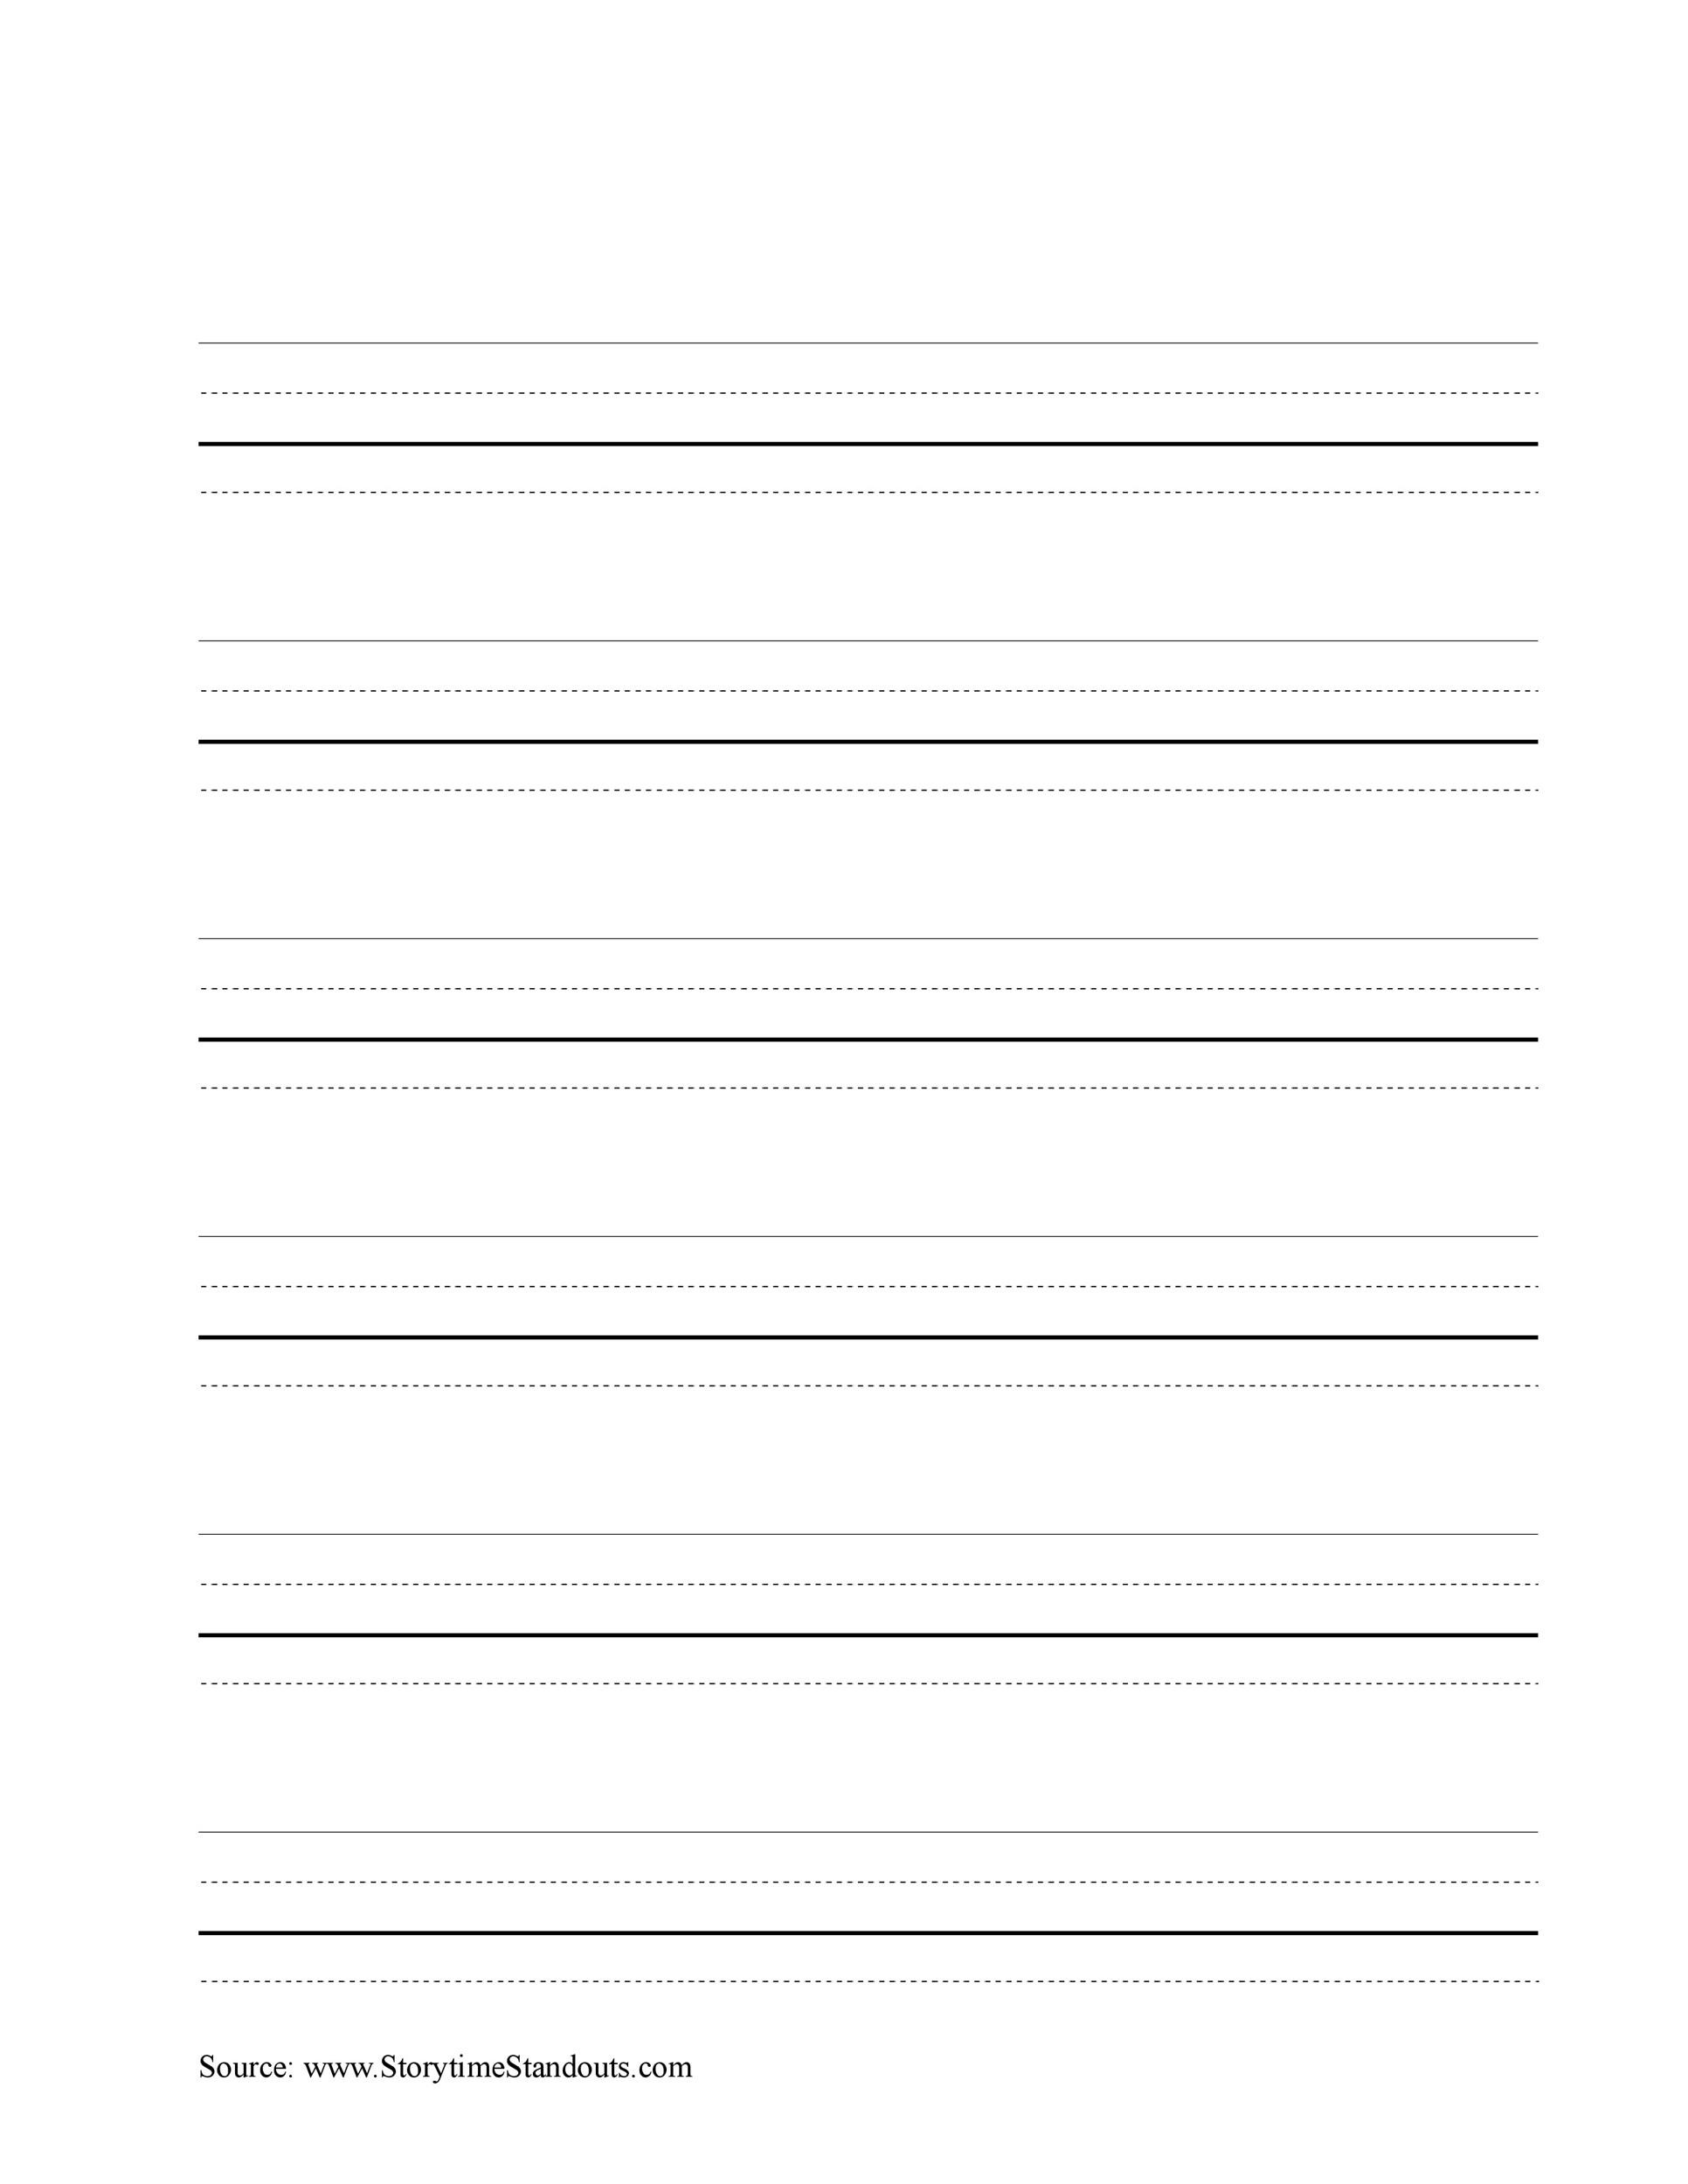 Lined Letter Writing Paper from templatelab.com